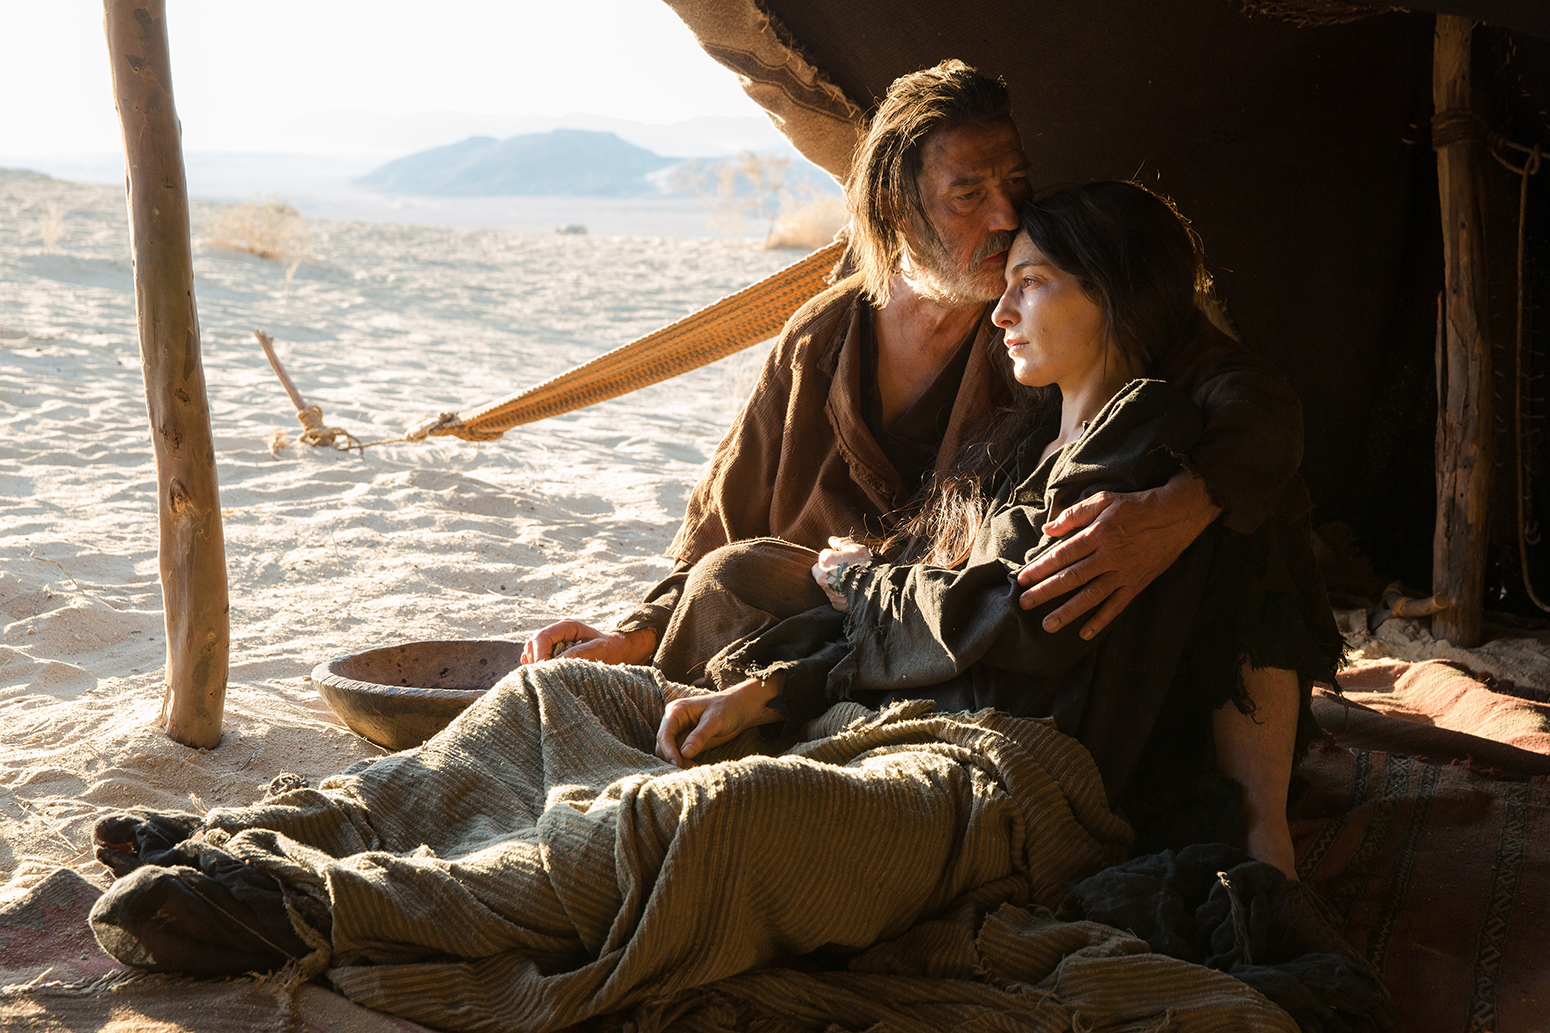 Jesus encounters a man (Ciaran Hinds) and his ailing wife (Ayelet Zurer) during his journey.